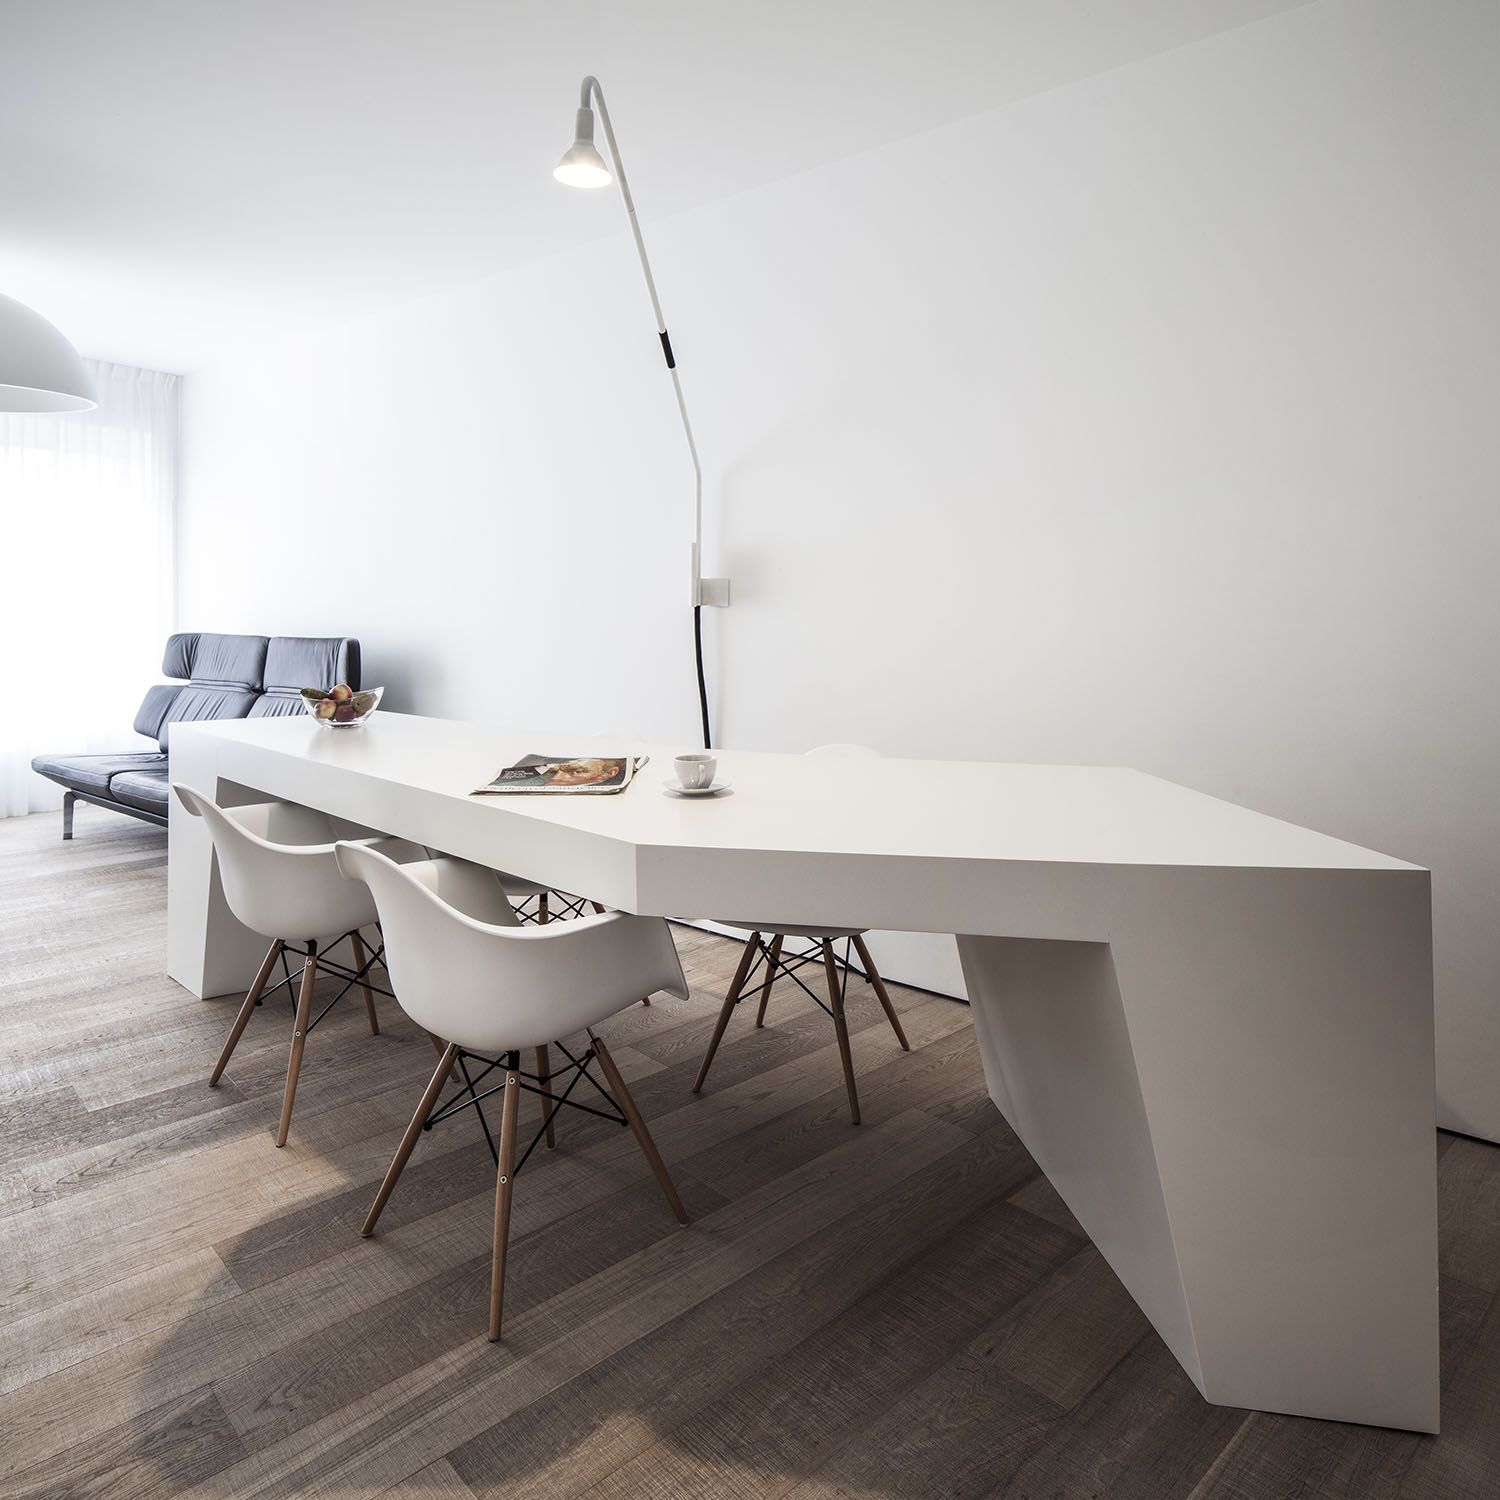 CTA_Twisted Dining Table_Beeld 3